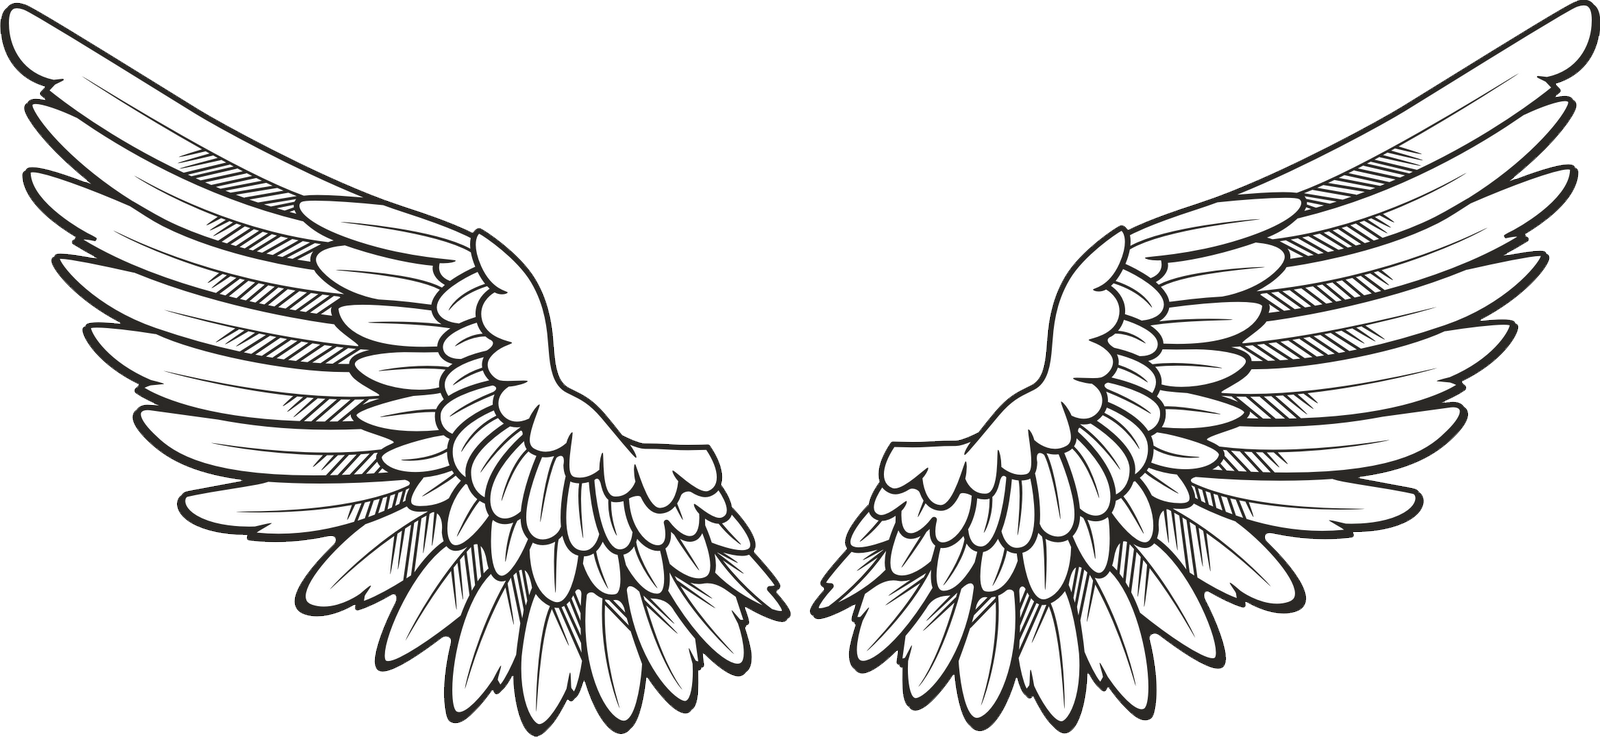 Transparent Background Angel Wings Png Clipart In 2020 Angel Wings Clip Art Wings Tattoo Wing Neck Tattoo